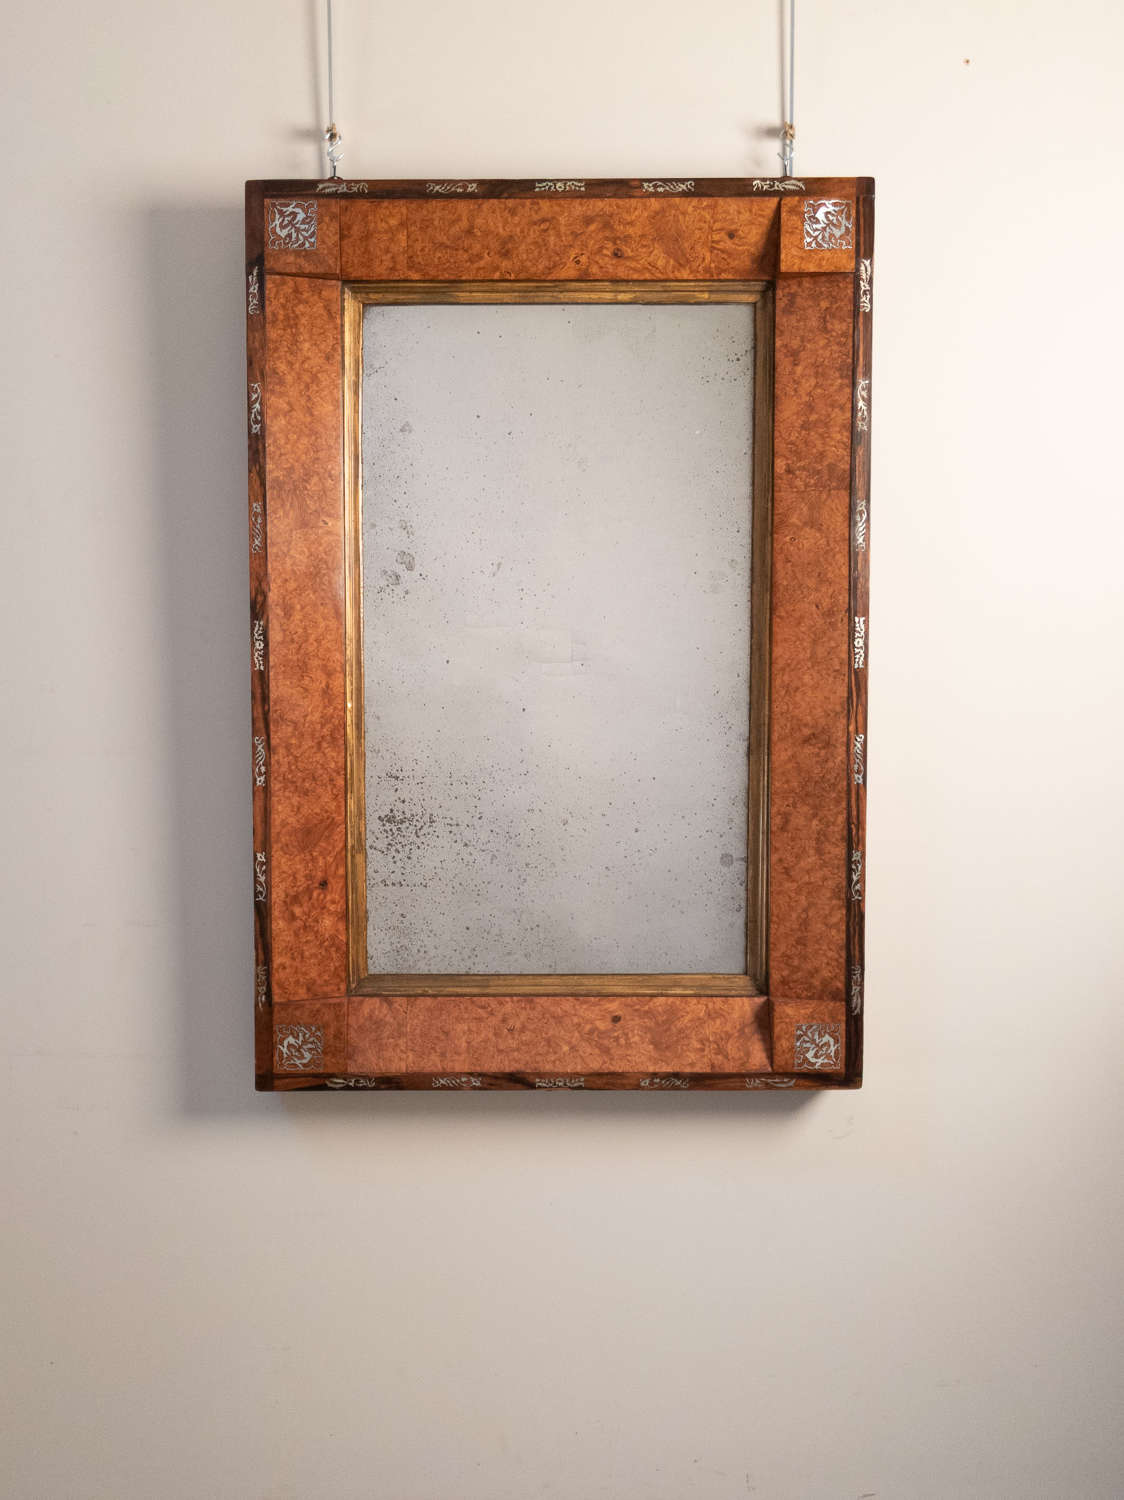 An early 19th Century French Inlaid mirror